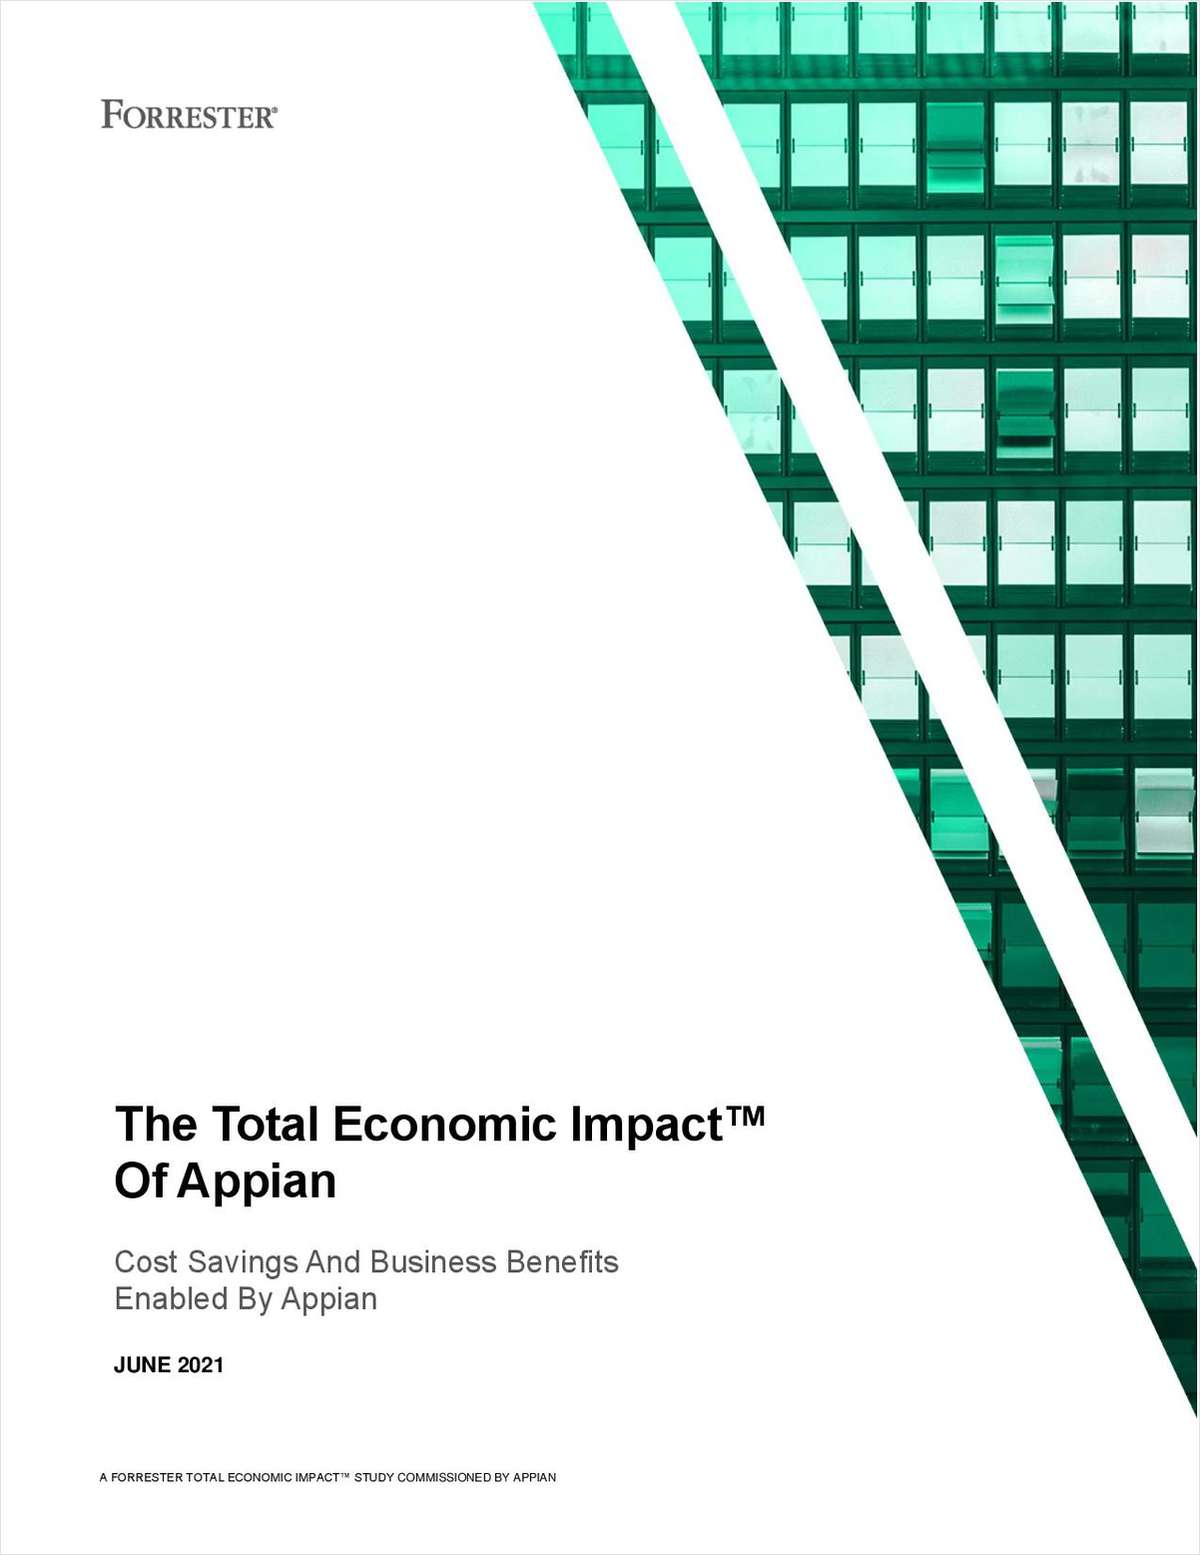 Total Economic Impact of Appian (TEI Report by Forrester)